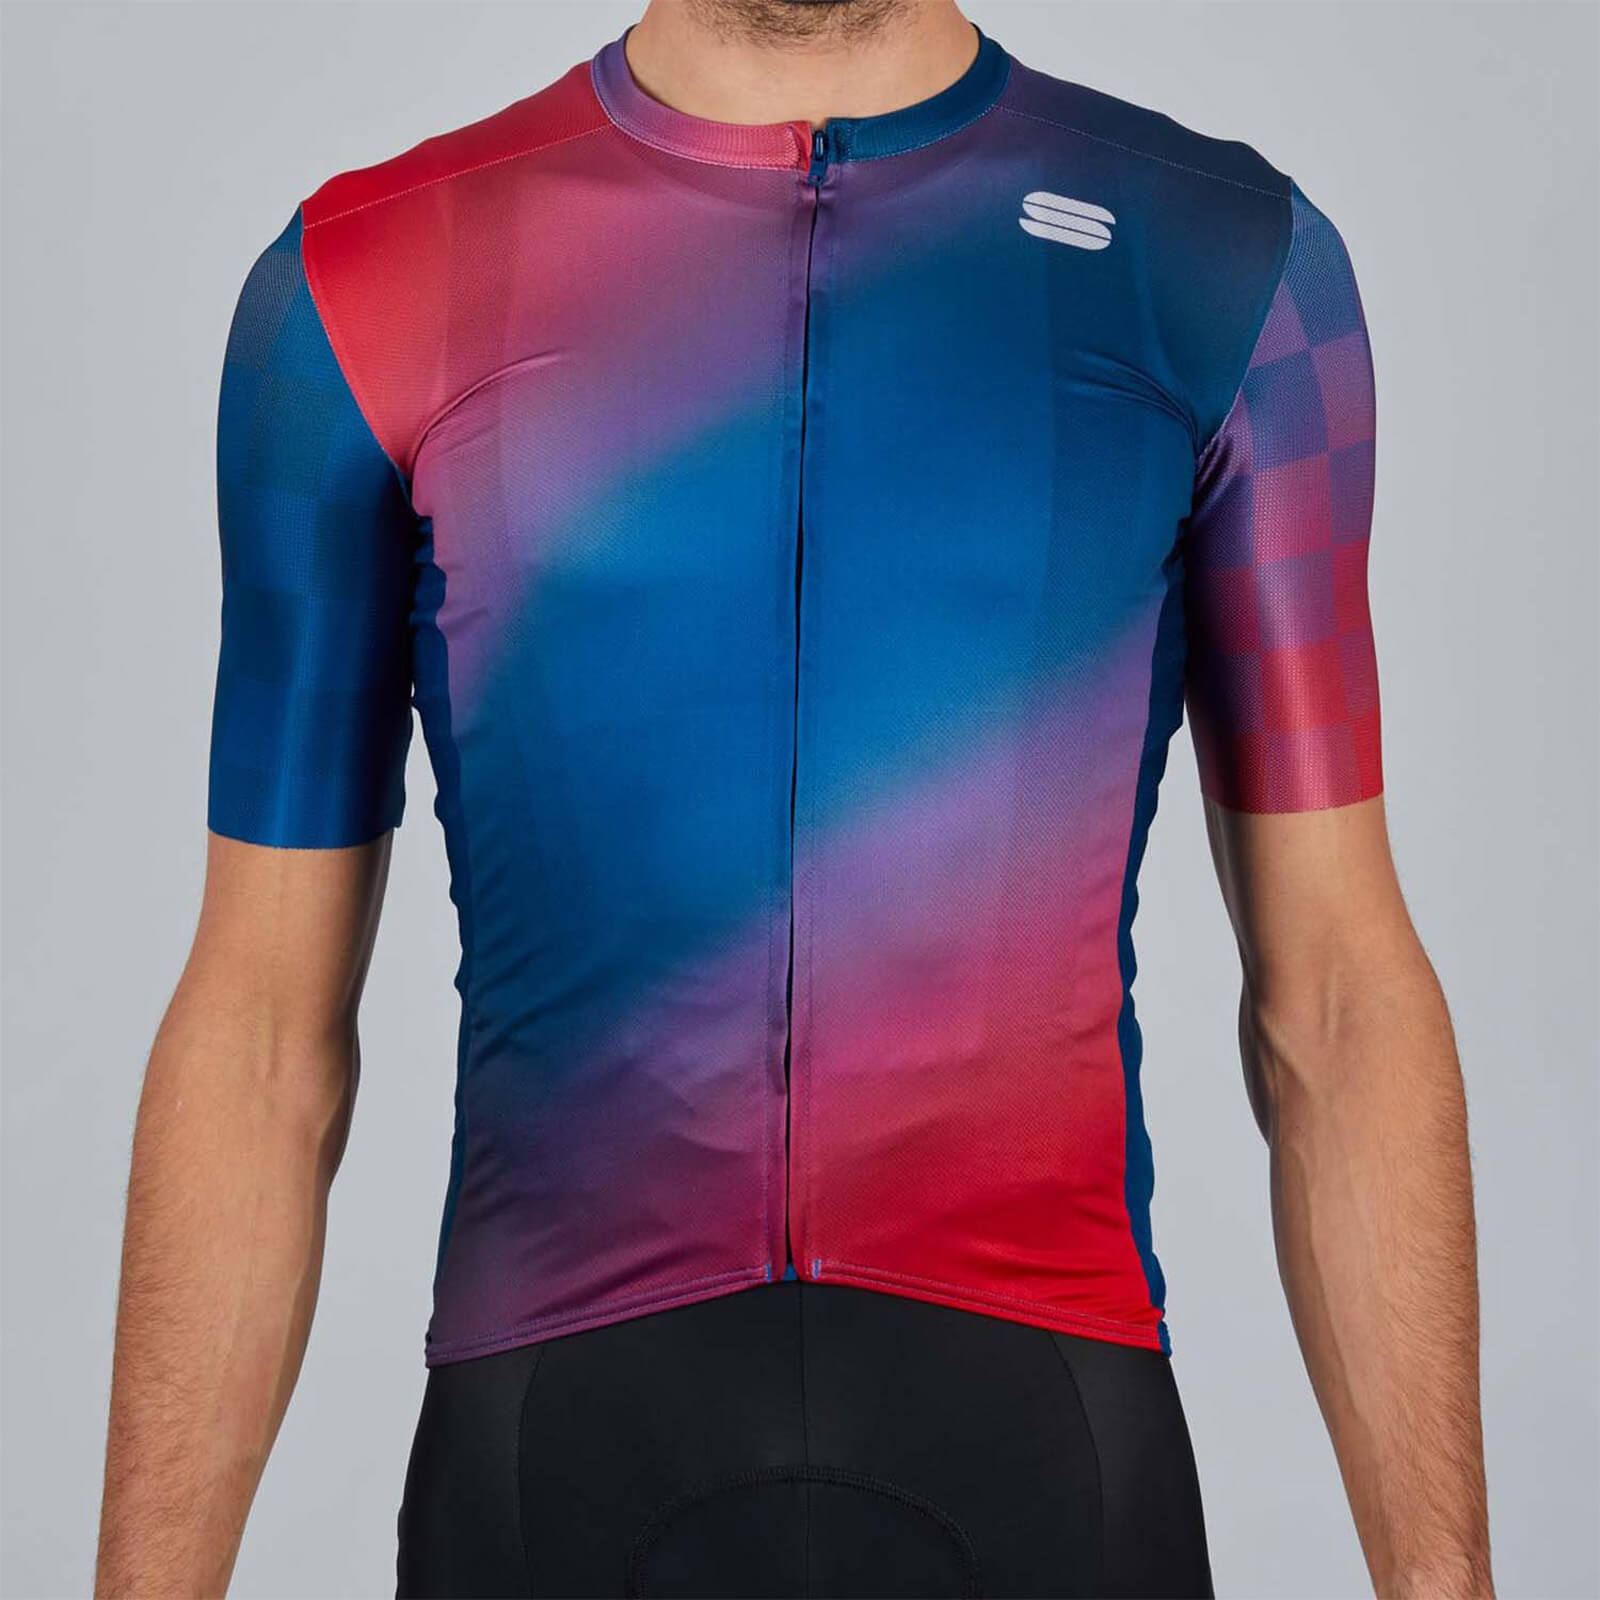 Sportful Rocket Jersey - L - Blue/Red